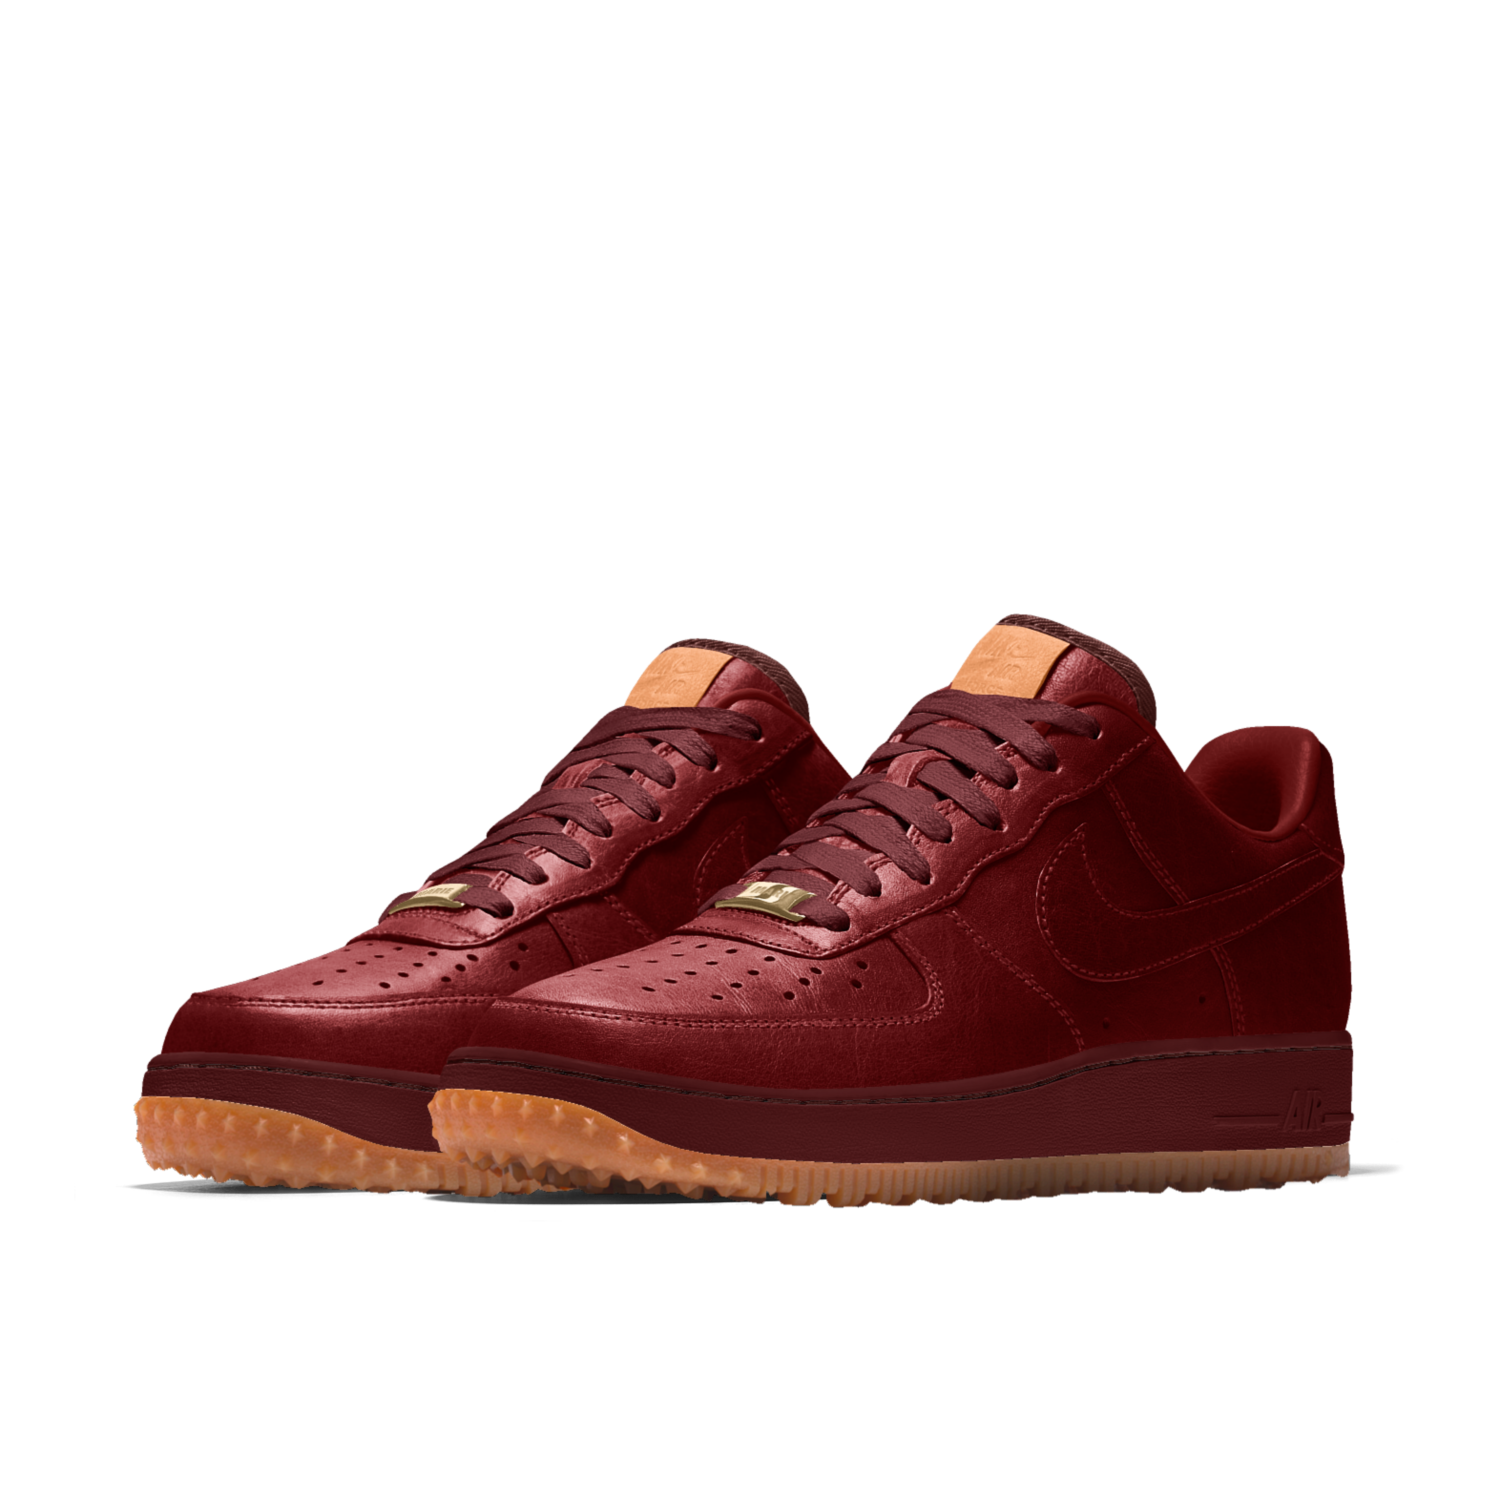 new arrival d04e6 a3711 Nike Air Force 1 Low Premium Will Leather Goods iD Schuh. Nike.com DE